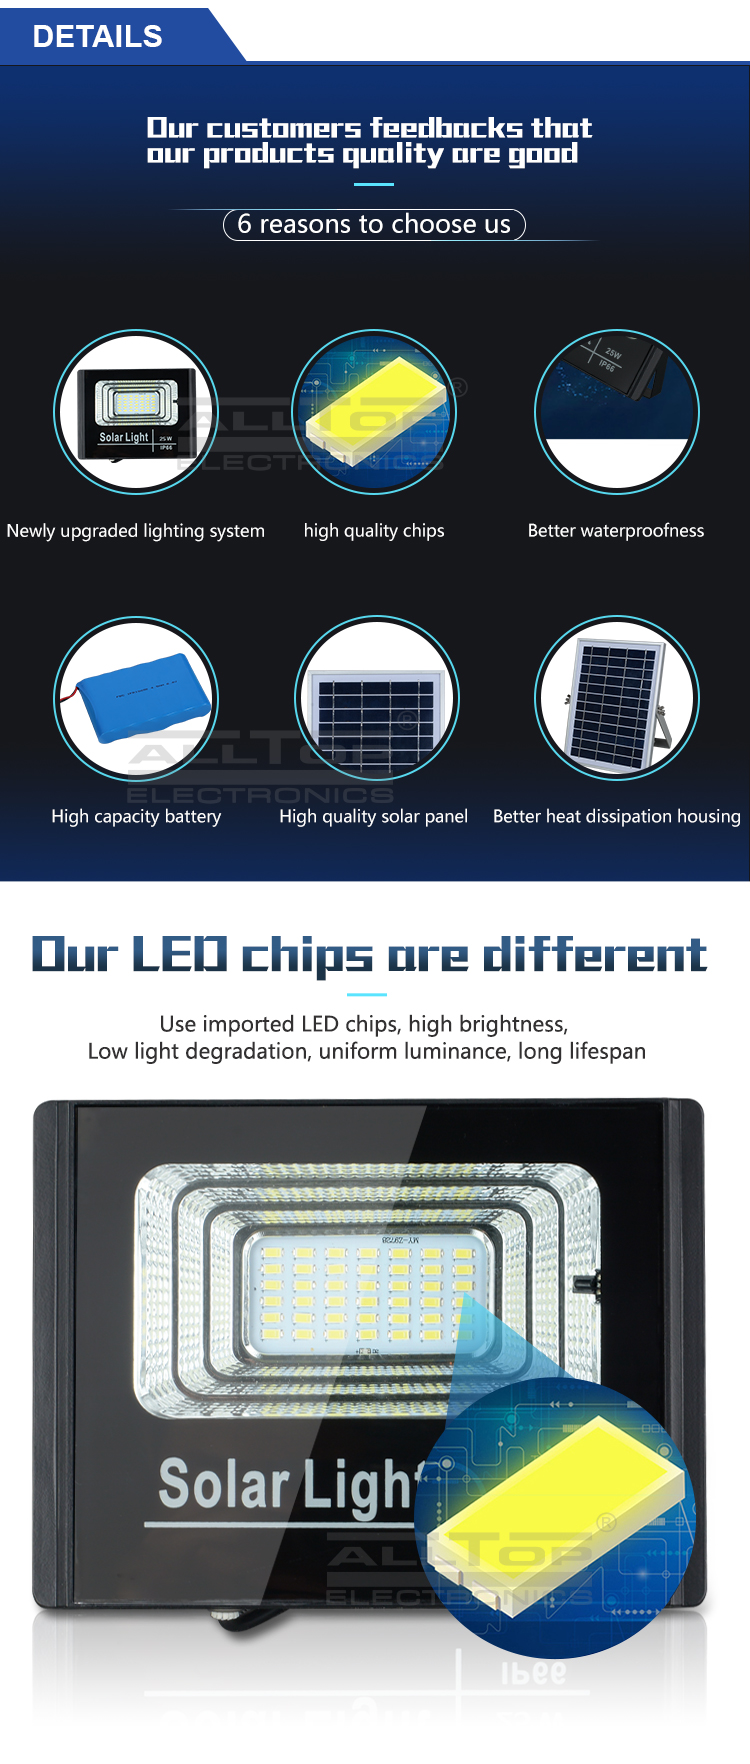 ALLTOP High quality outdoor sports stadiums lighting waterproof smd ip66 25w 40w 60w 100w solar led flood light